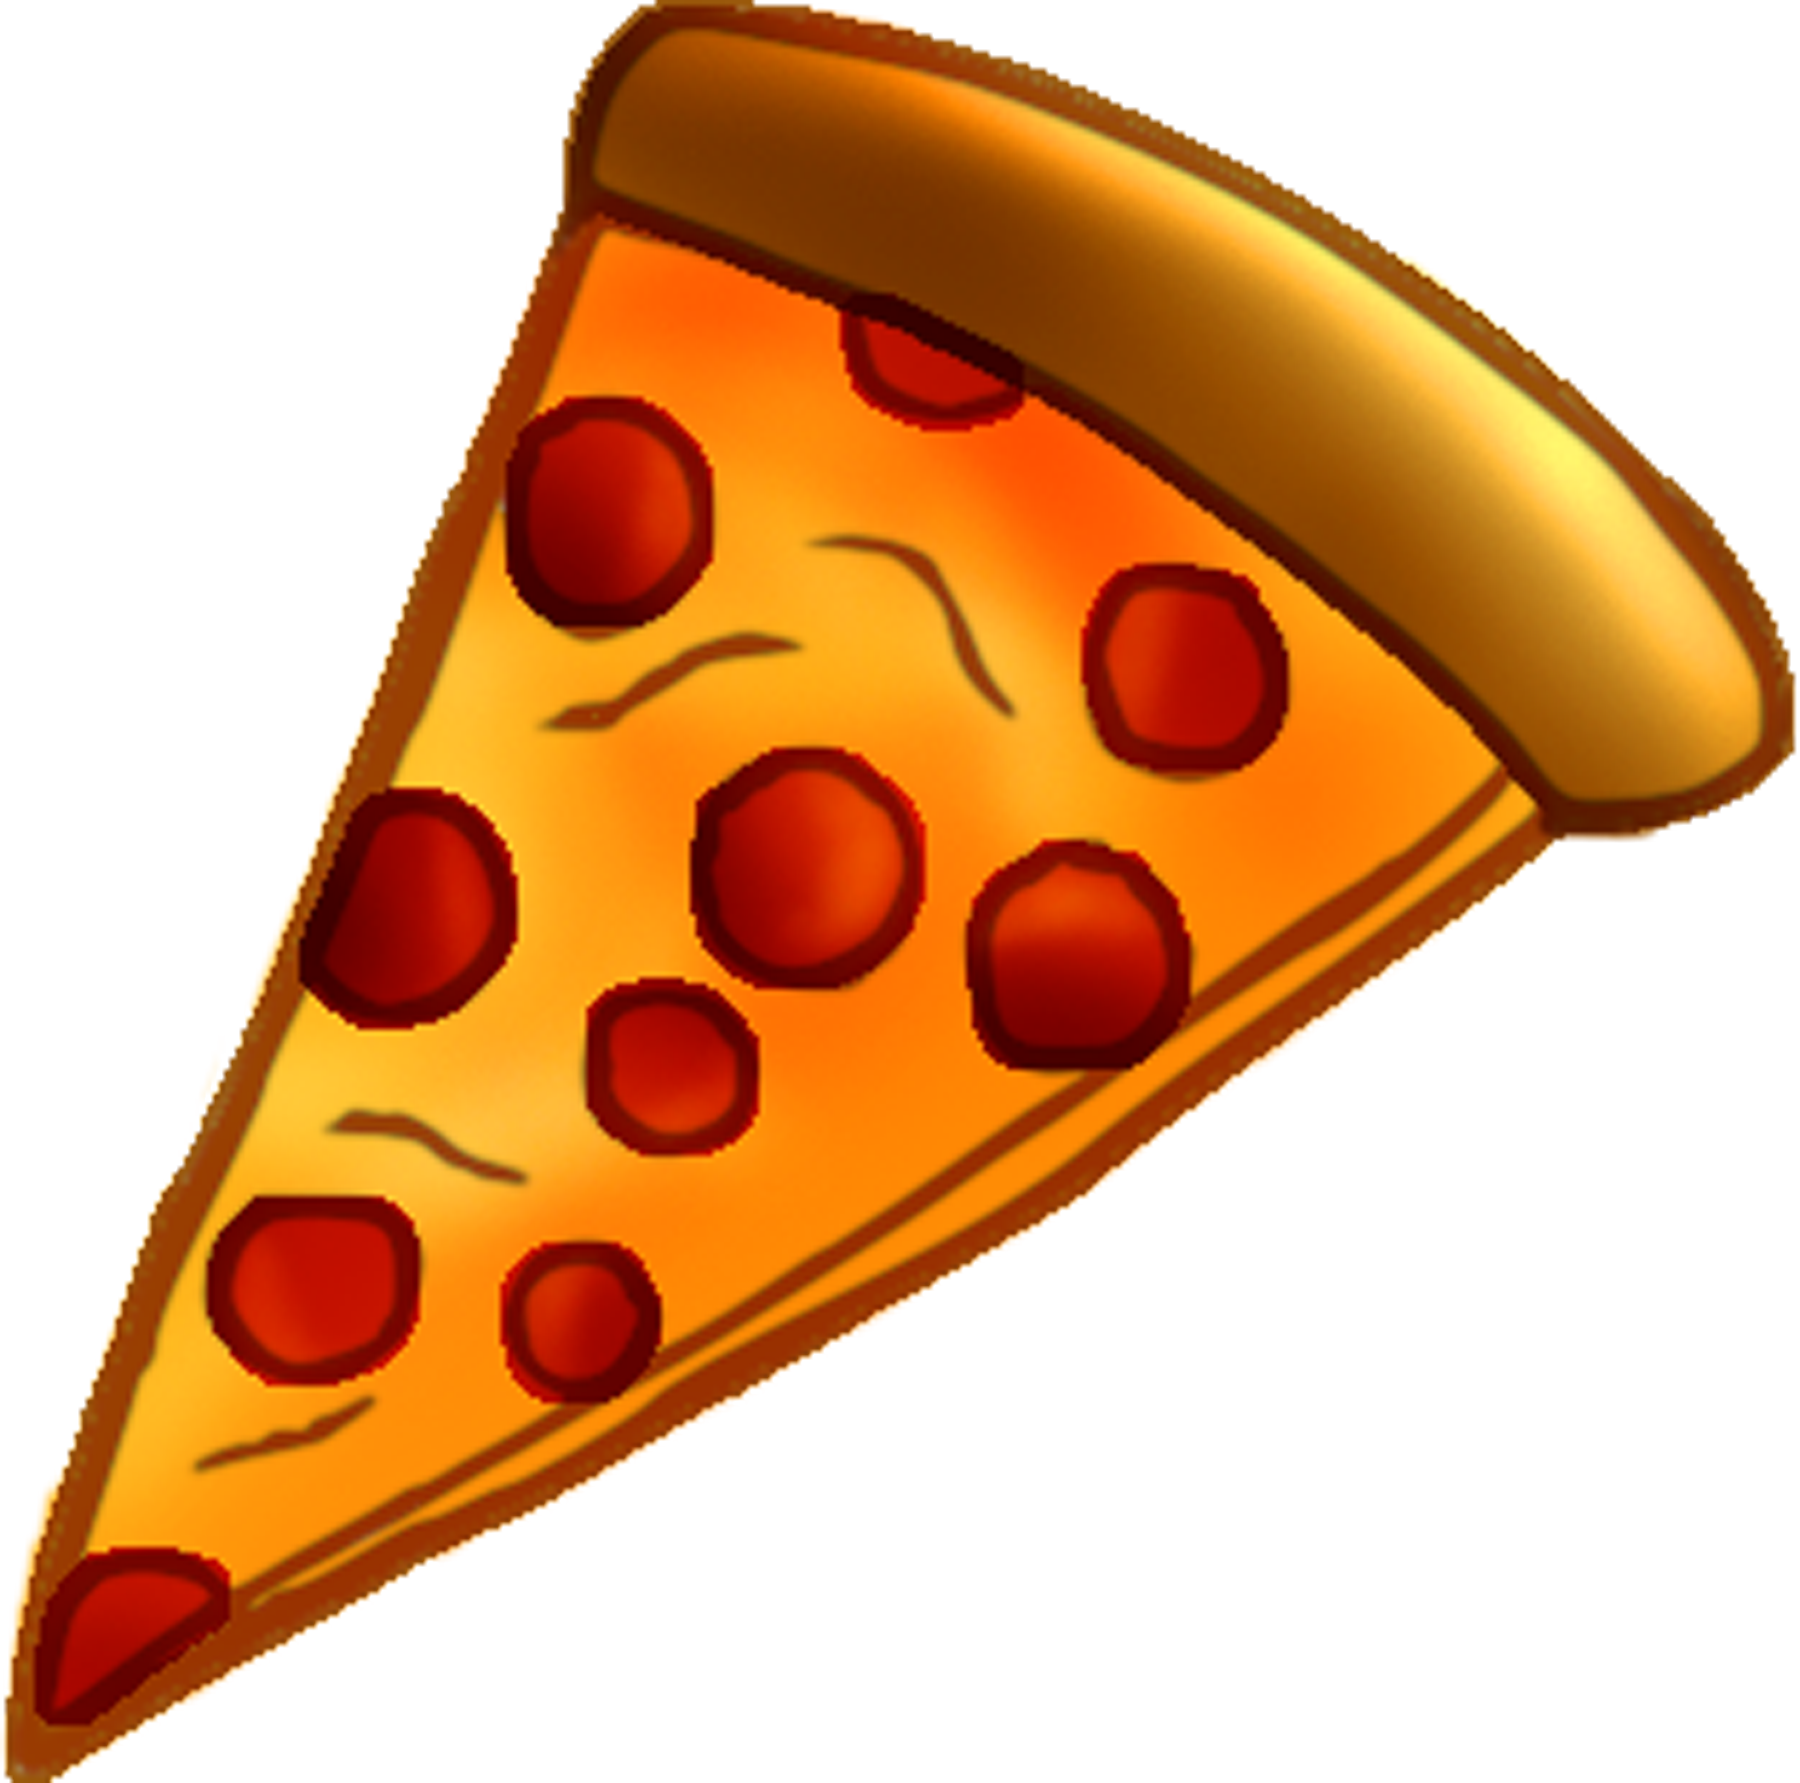 free png pizza slice transparent pizza slice png images ninja turtles clip art black and white ninja turtle clip art orange